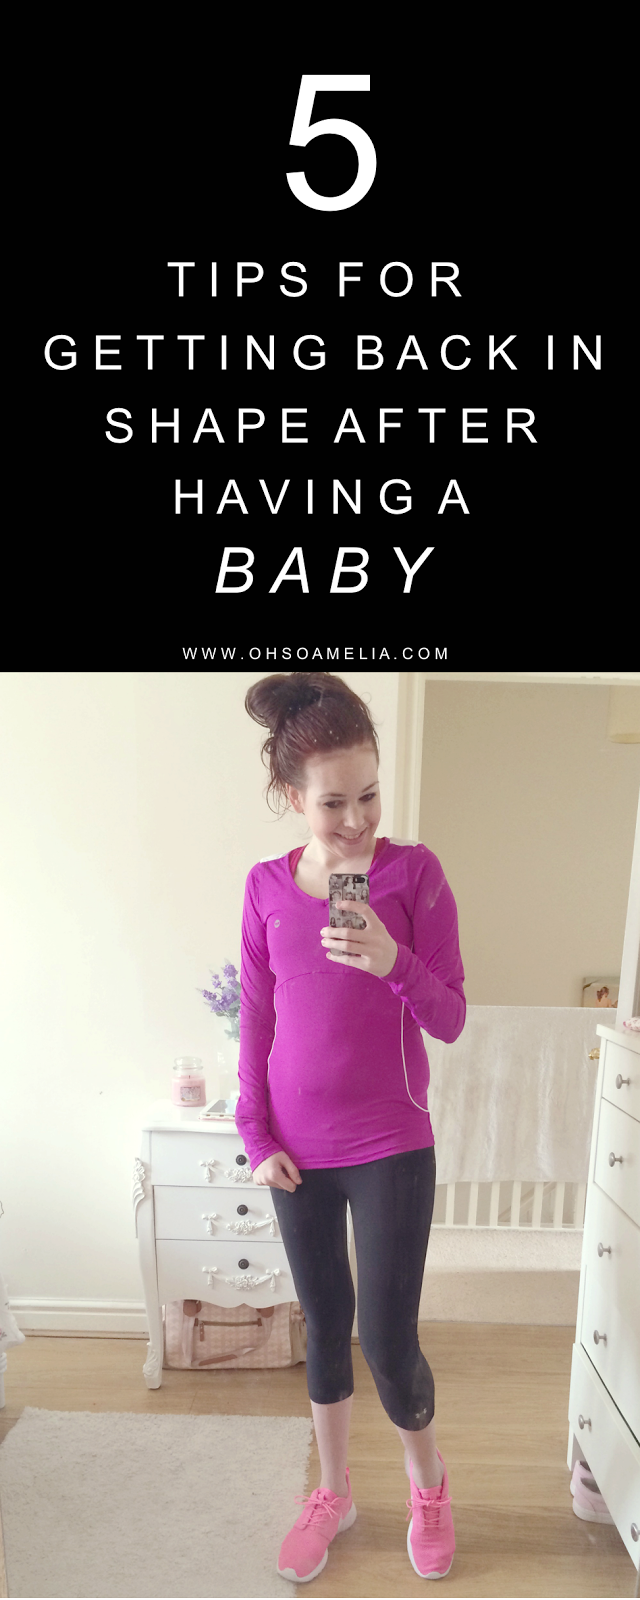 Here are 5 Tips For Getting Back In Shape After Having A Baby to shift that unwanted baby weight!